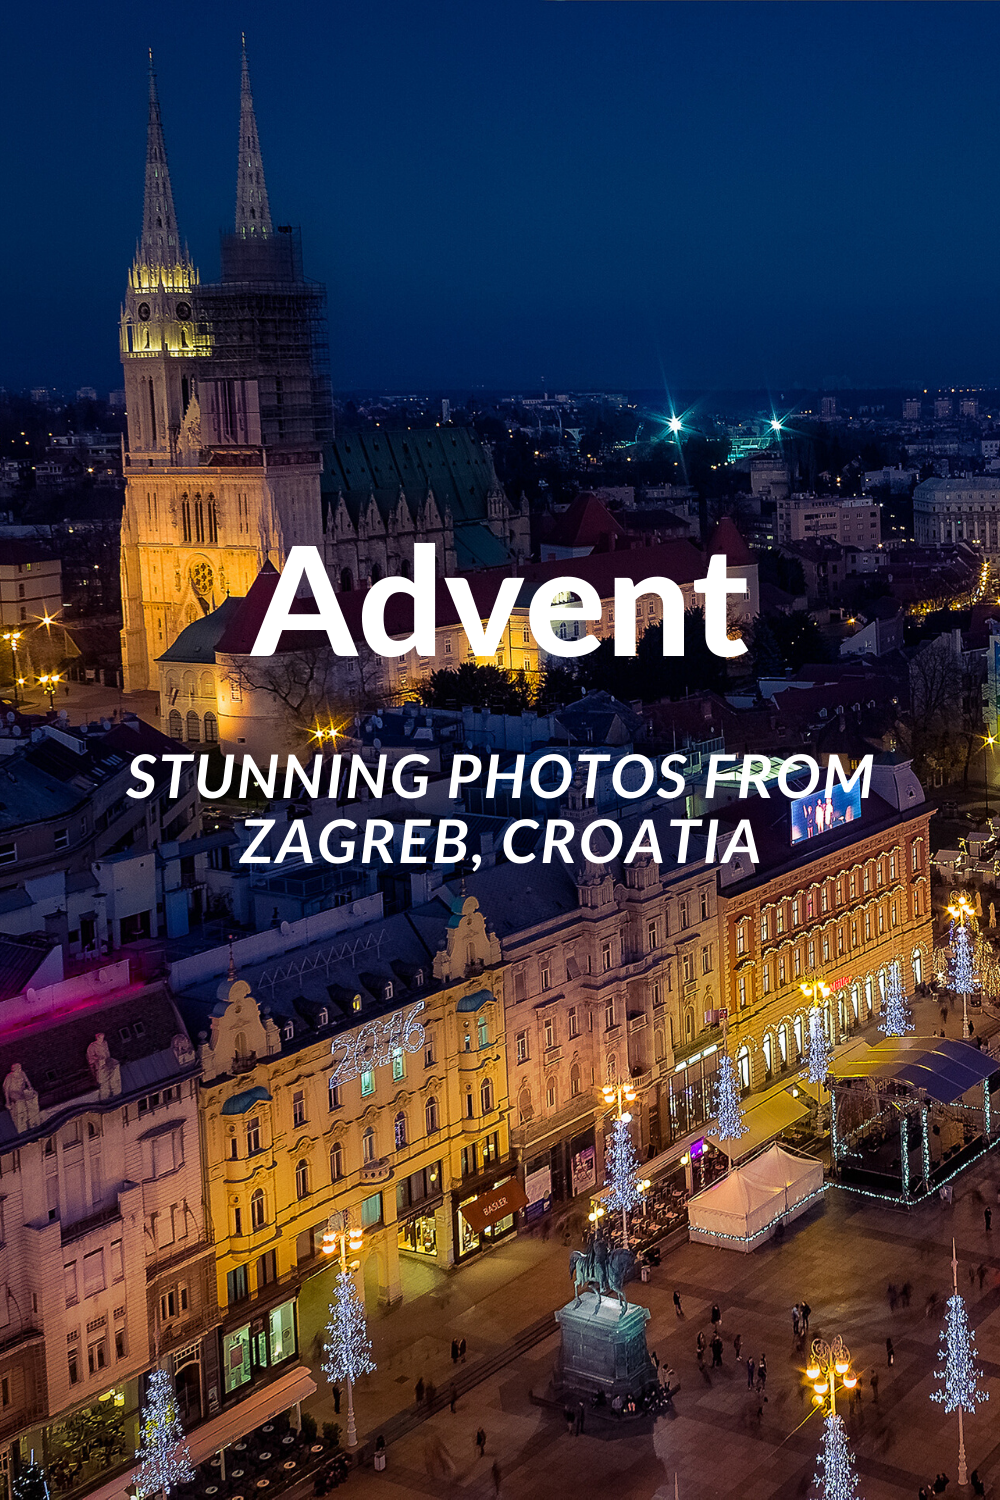 Stunning Photos Of Zagreb Capital Of Croatia At Advent Time In 2020 Croatia Photo Zagreb